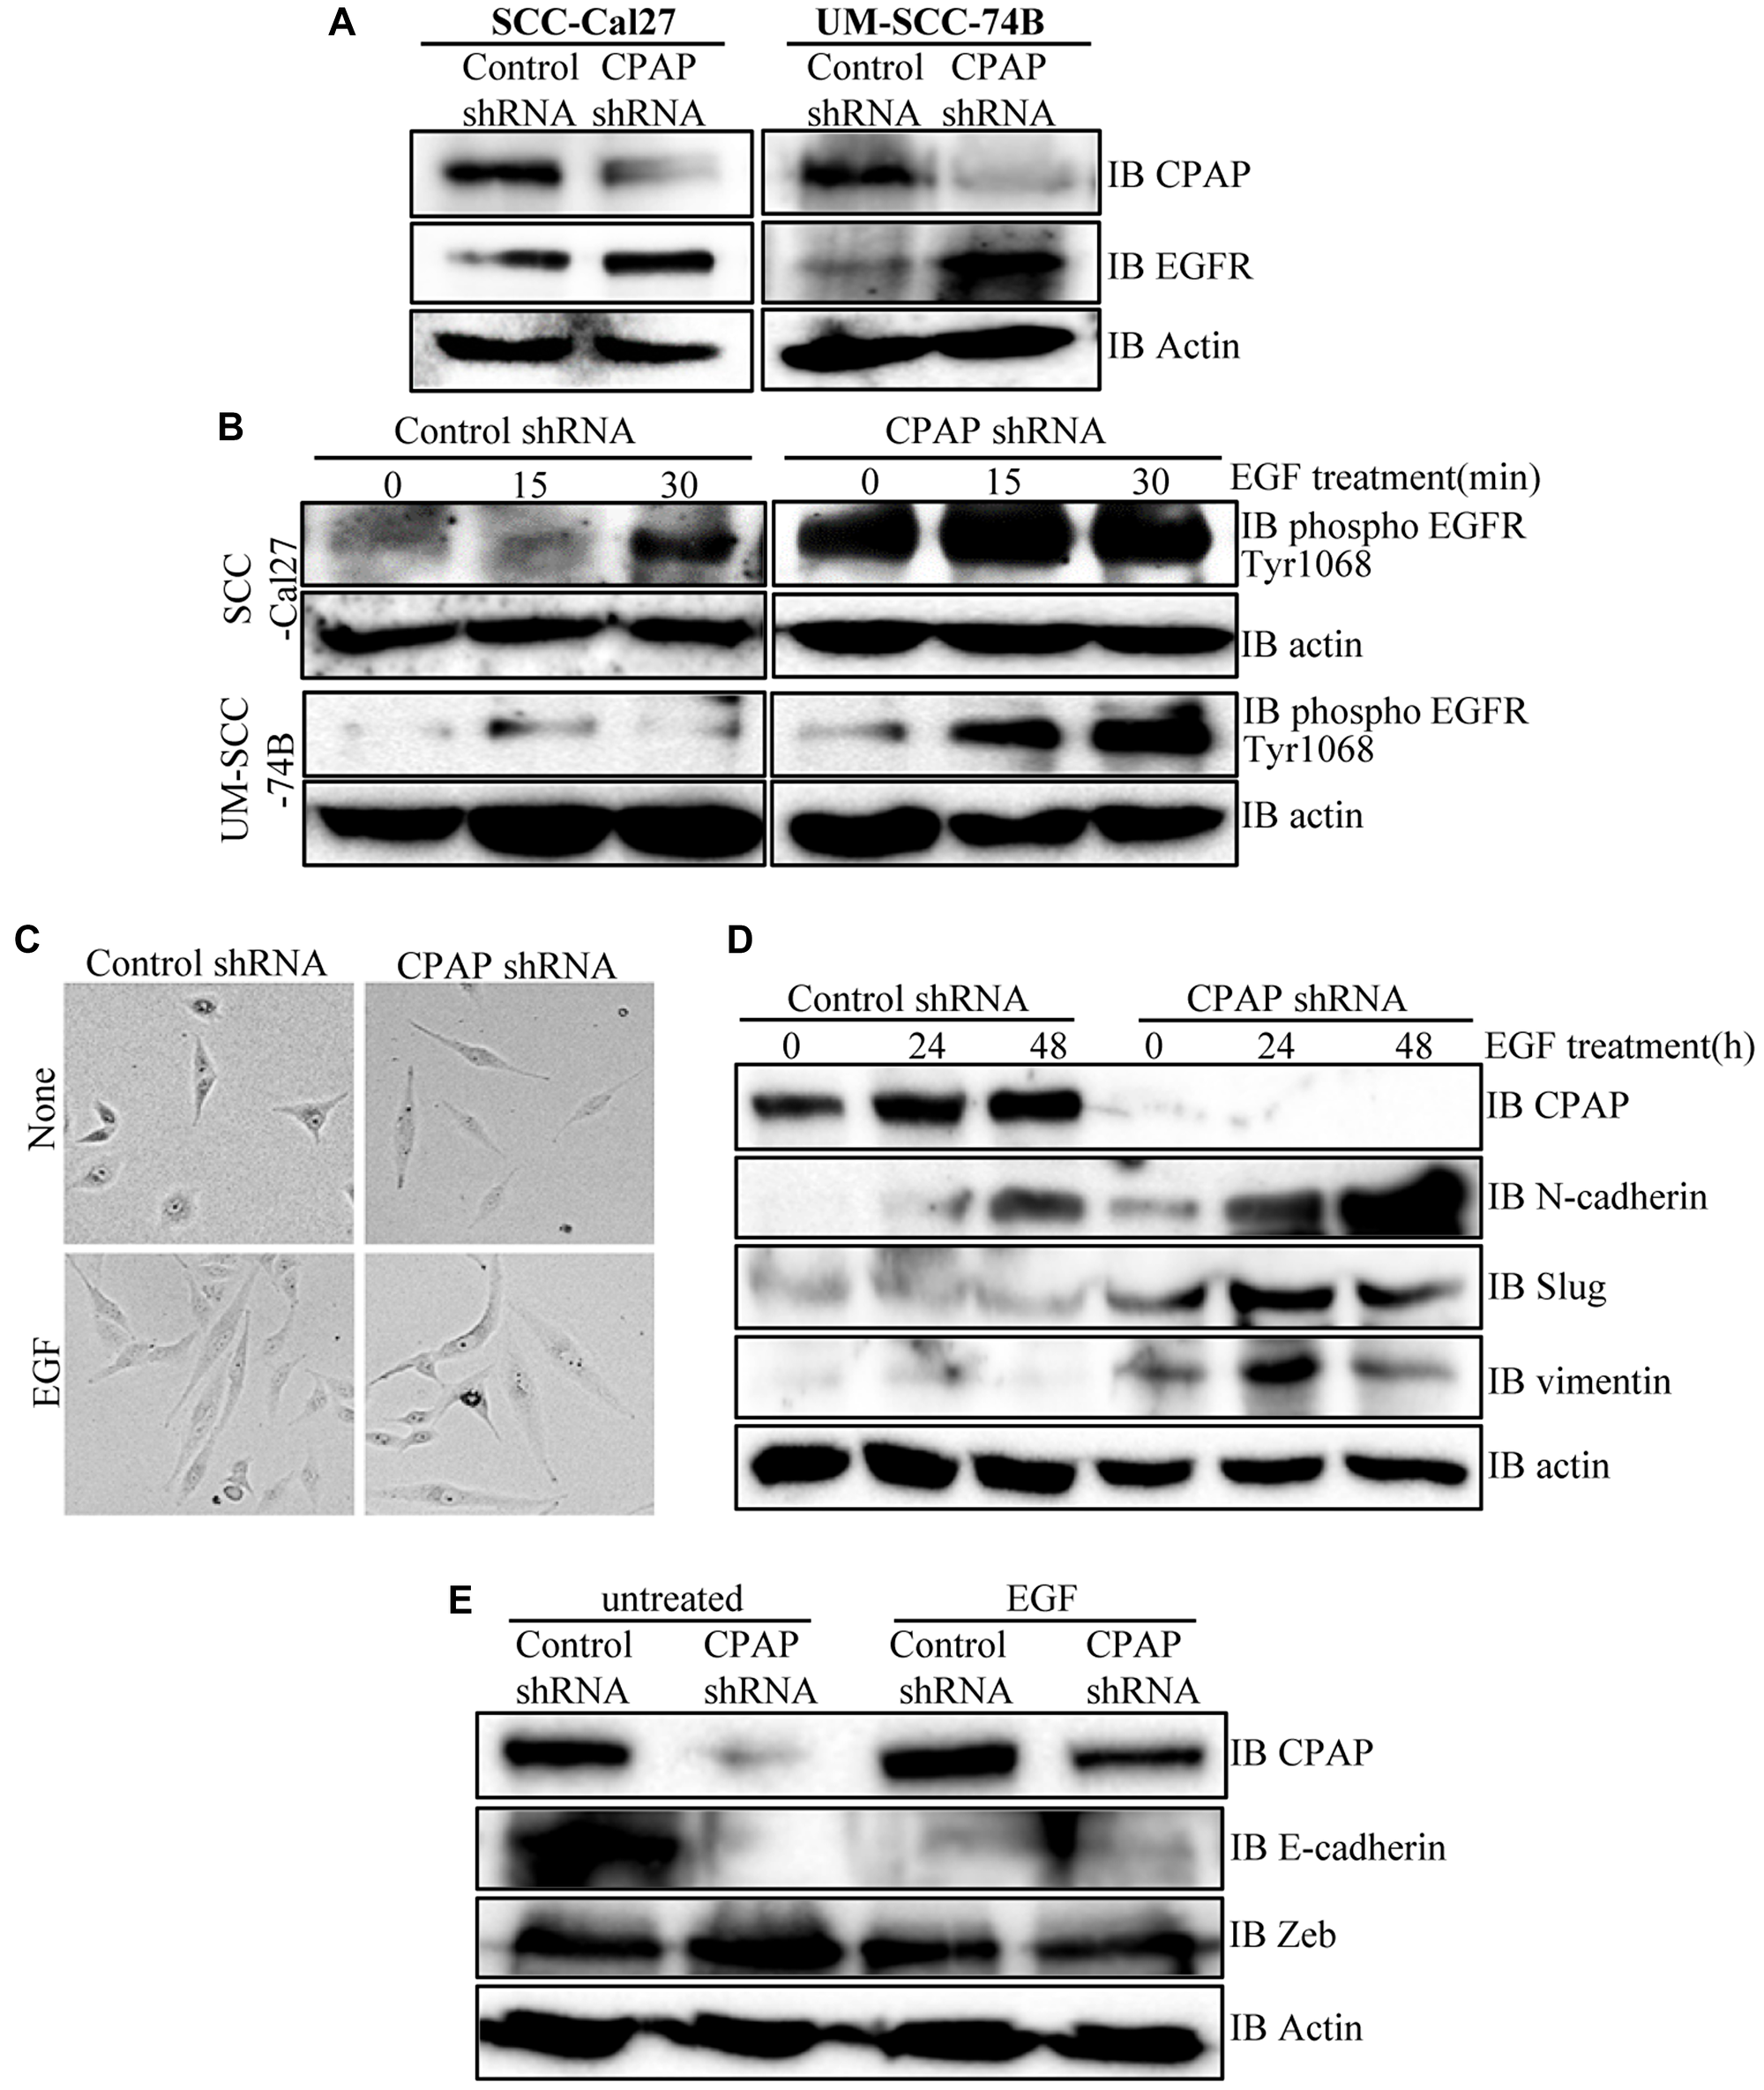 CPAP depletion in OSCC cells causes an increase in cellular levels of total and phospho-EGFR proteins, and EGF treatment enhances EMT-like features in these cells.